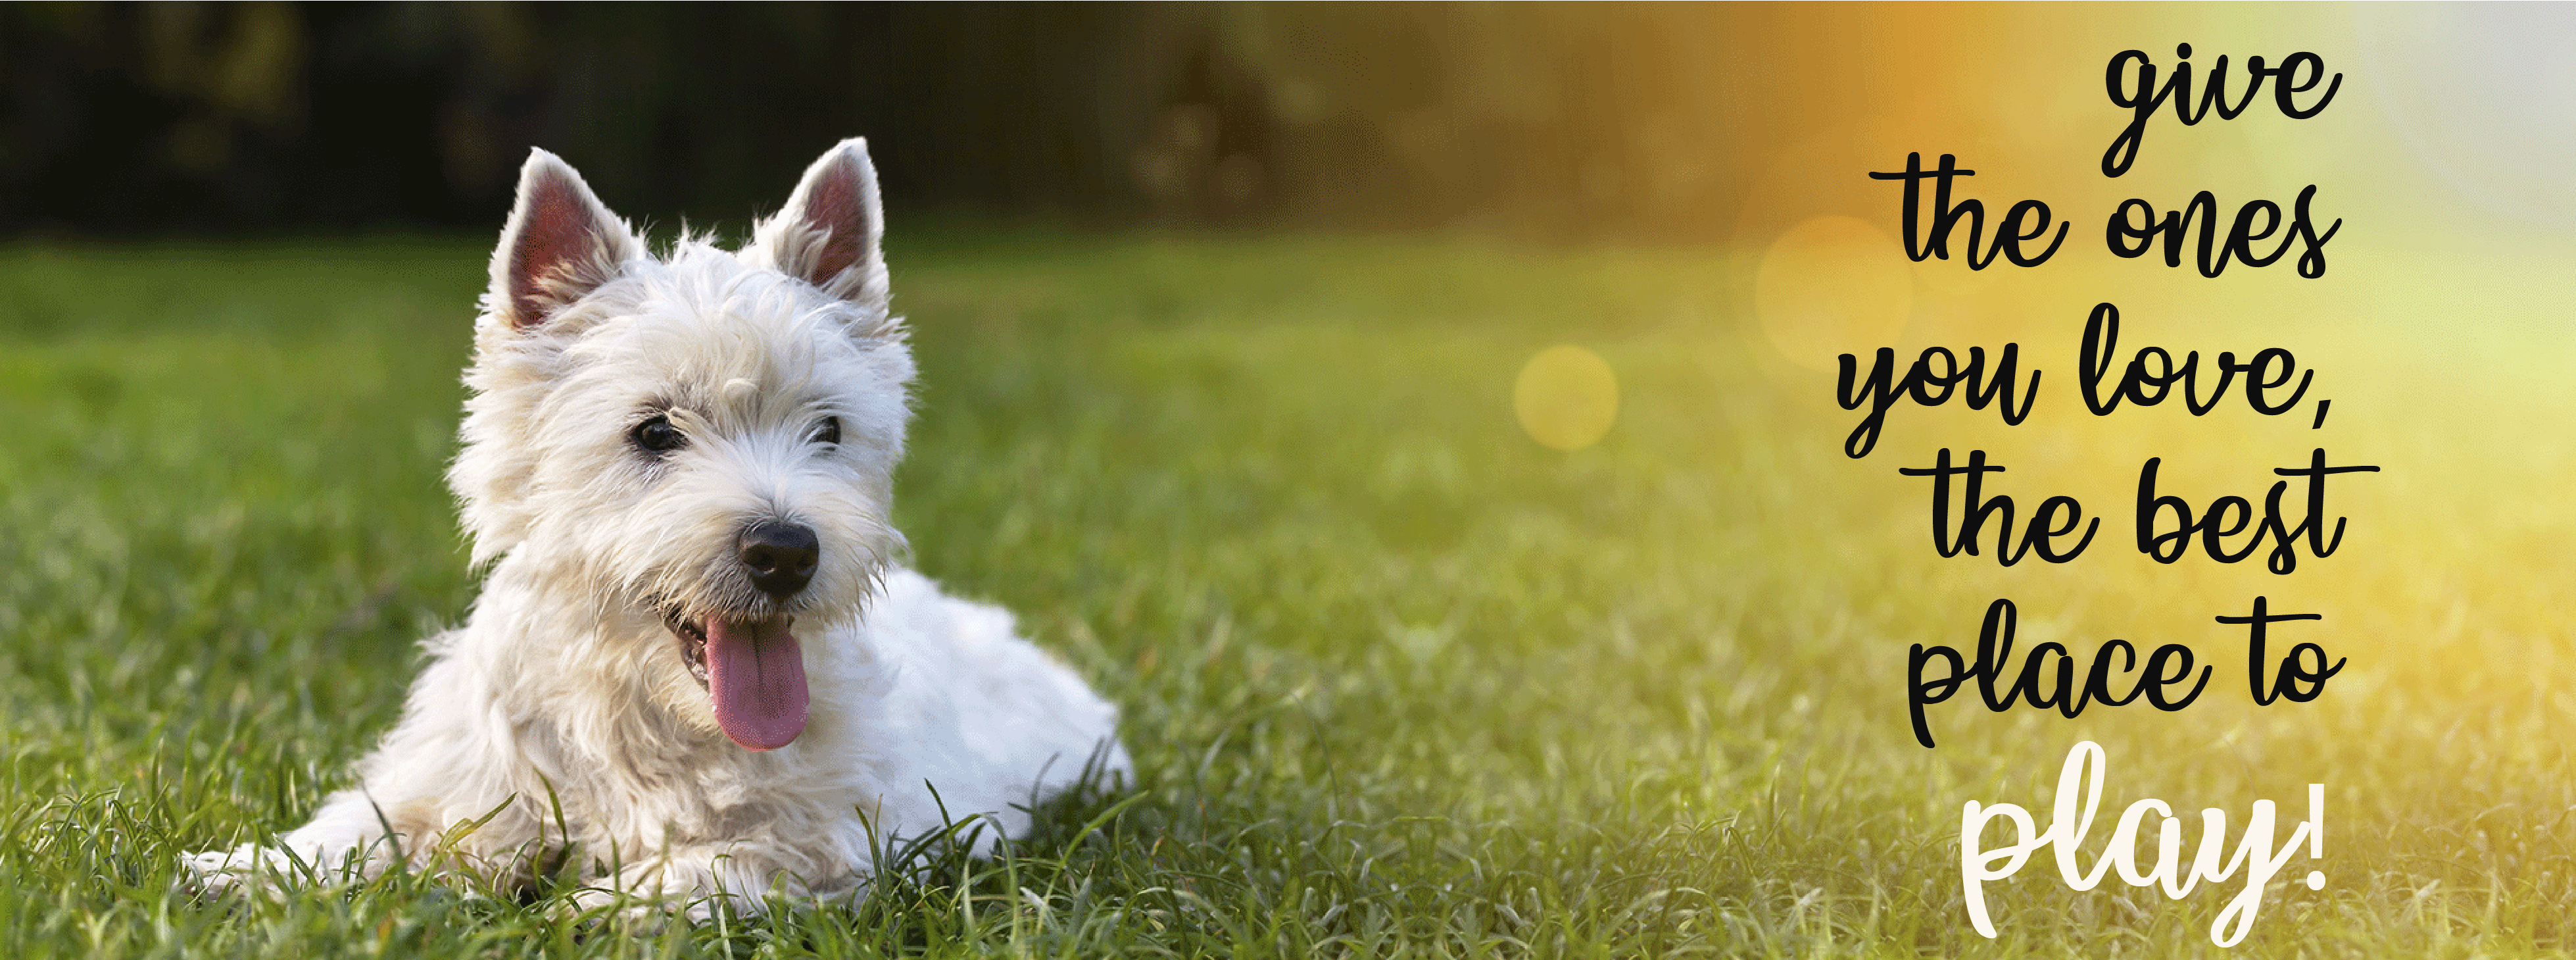 Flea and Tick Control - Services | Sping Touch Lawn & Pest